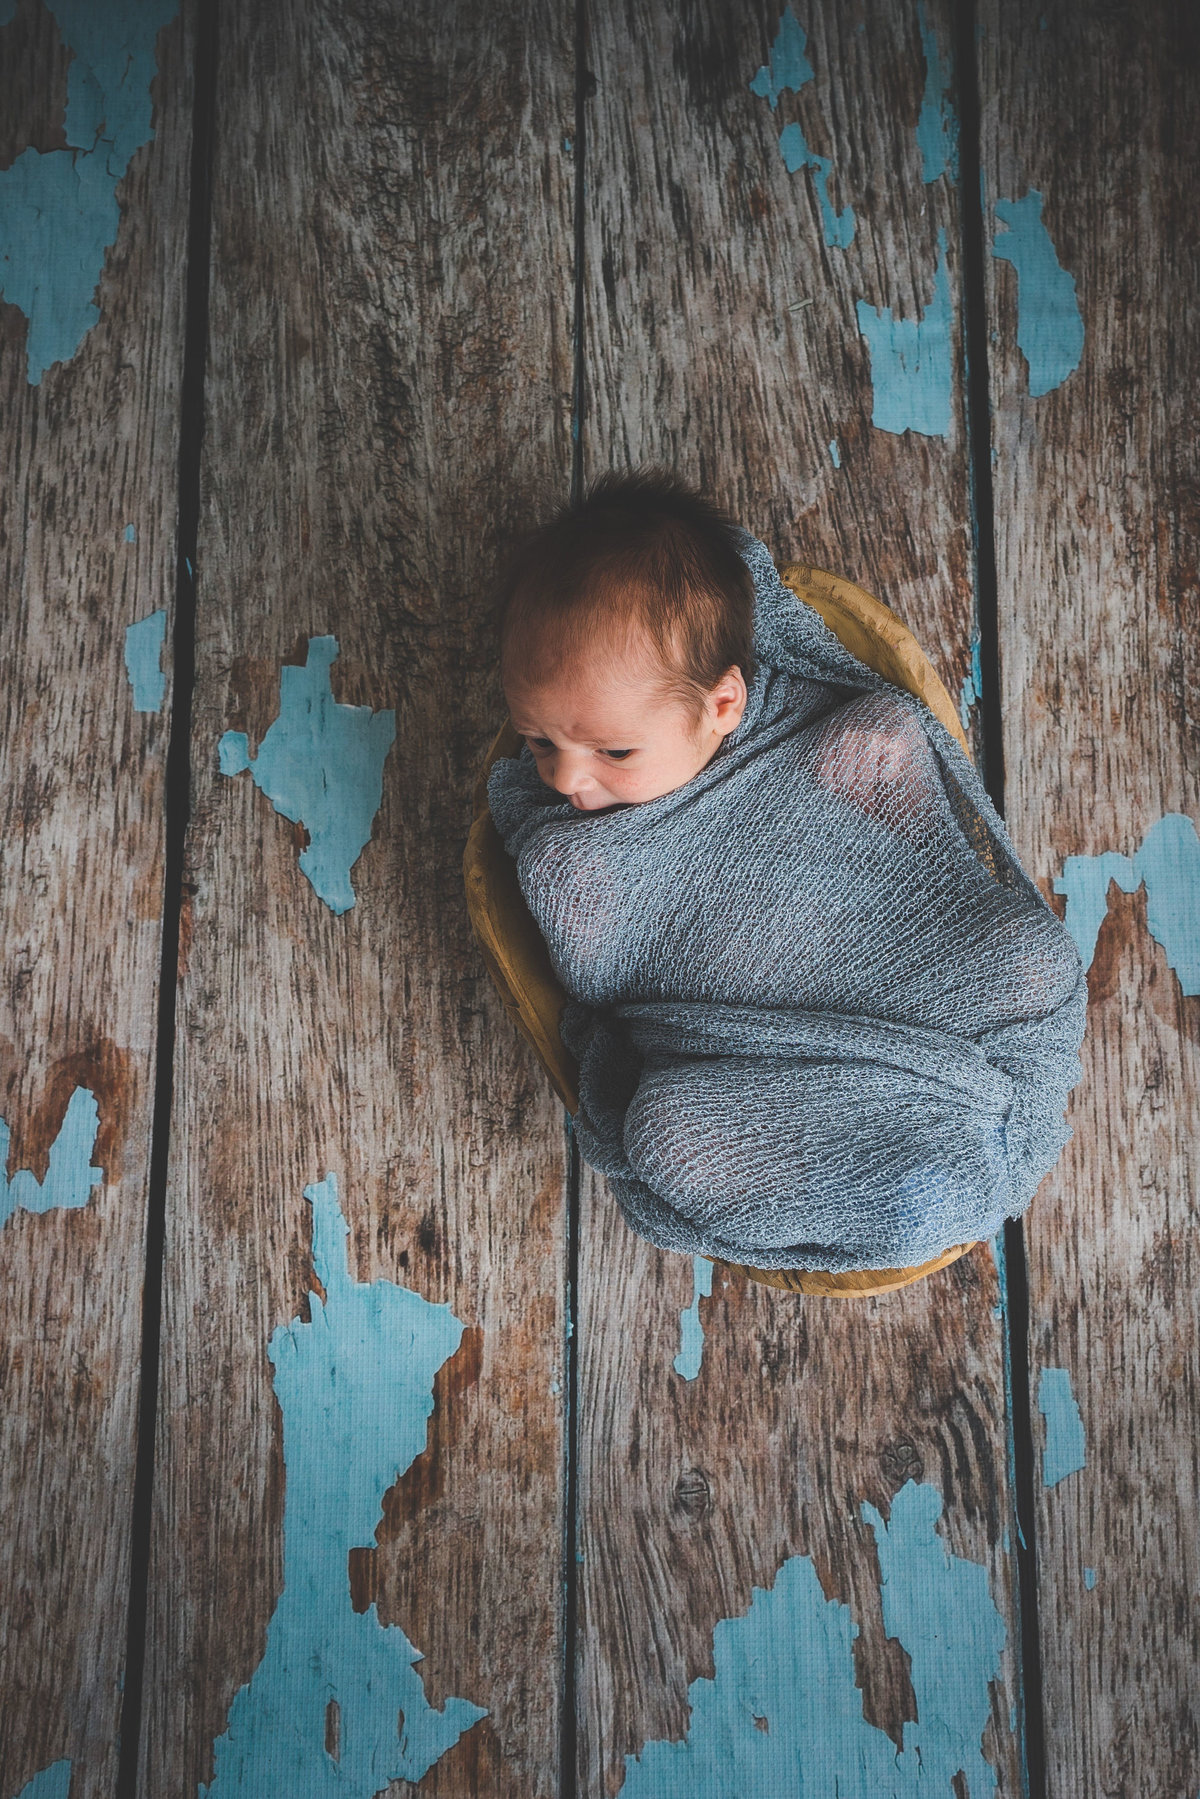 Newborn photography of baby wrapped in cheesecloth blanket in a bowl in a wooden floor.